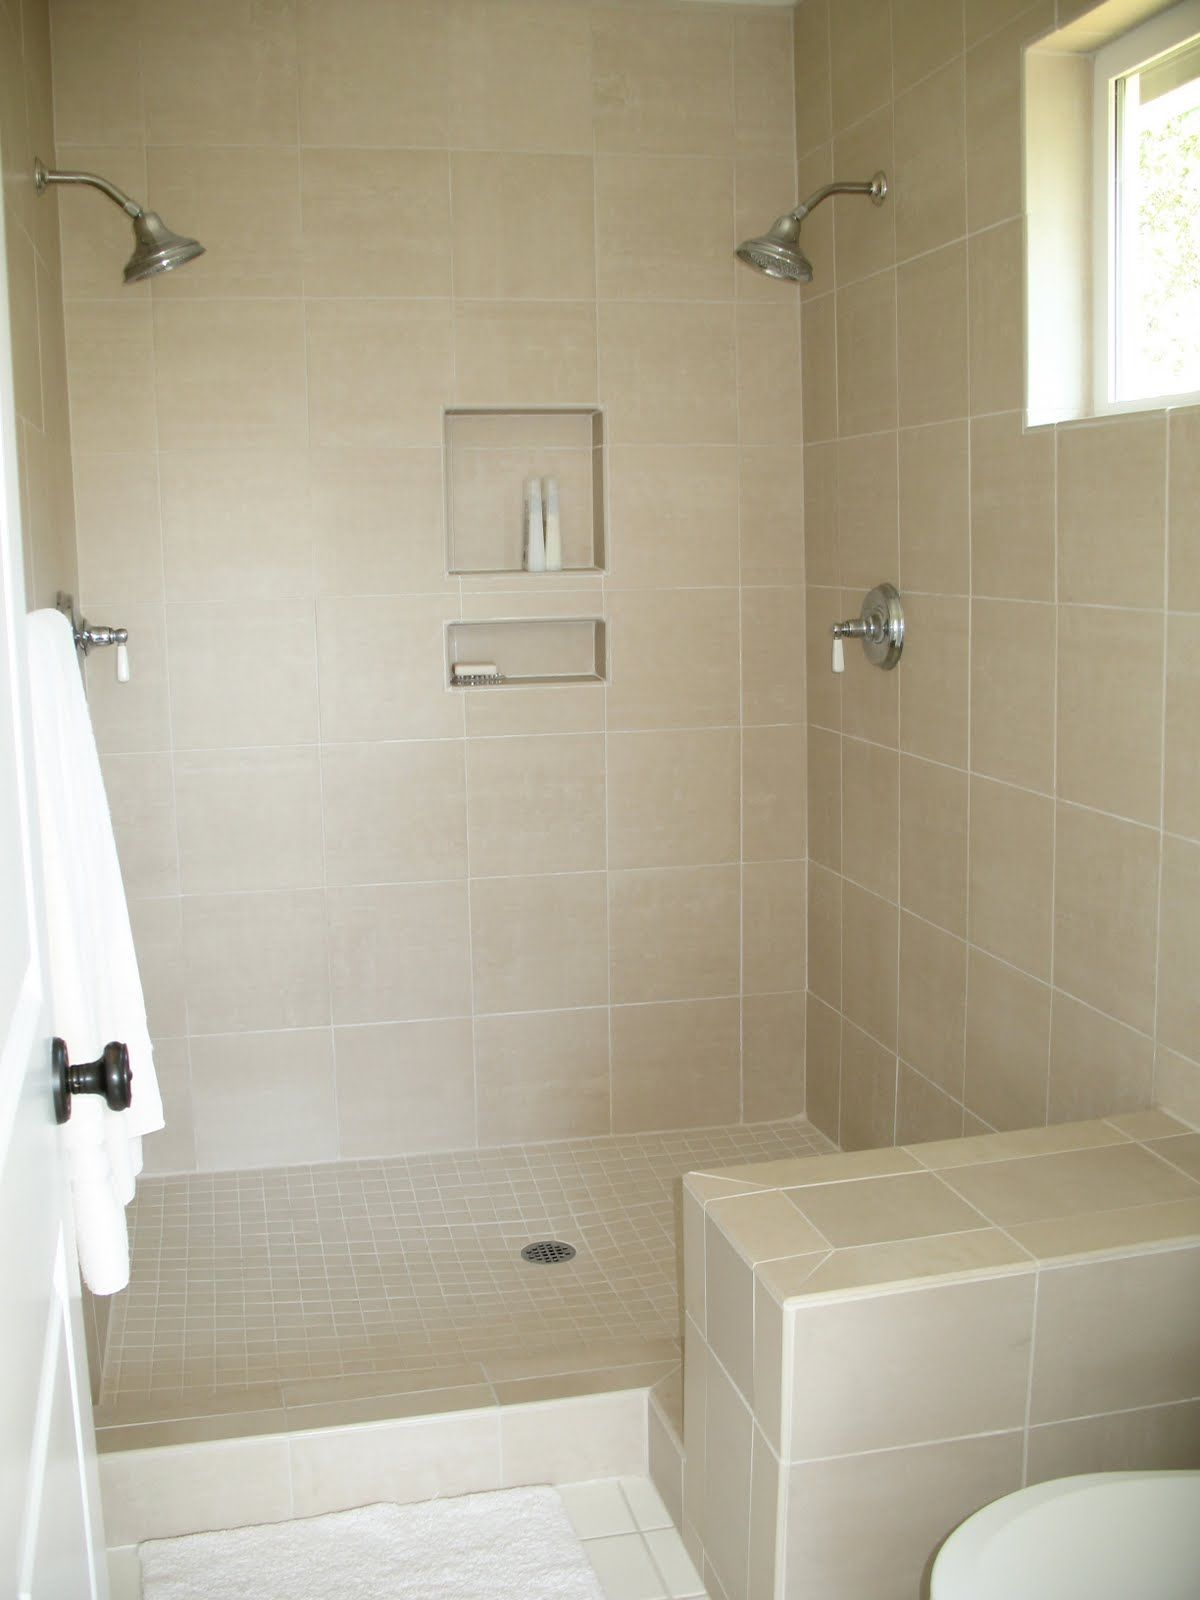 Showers Without Doors Google Search Basement Ideas